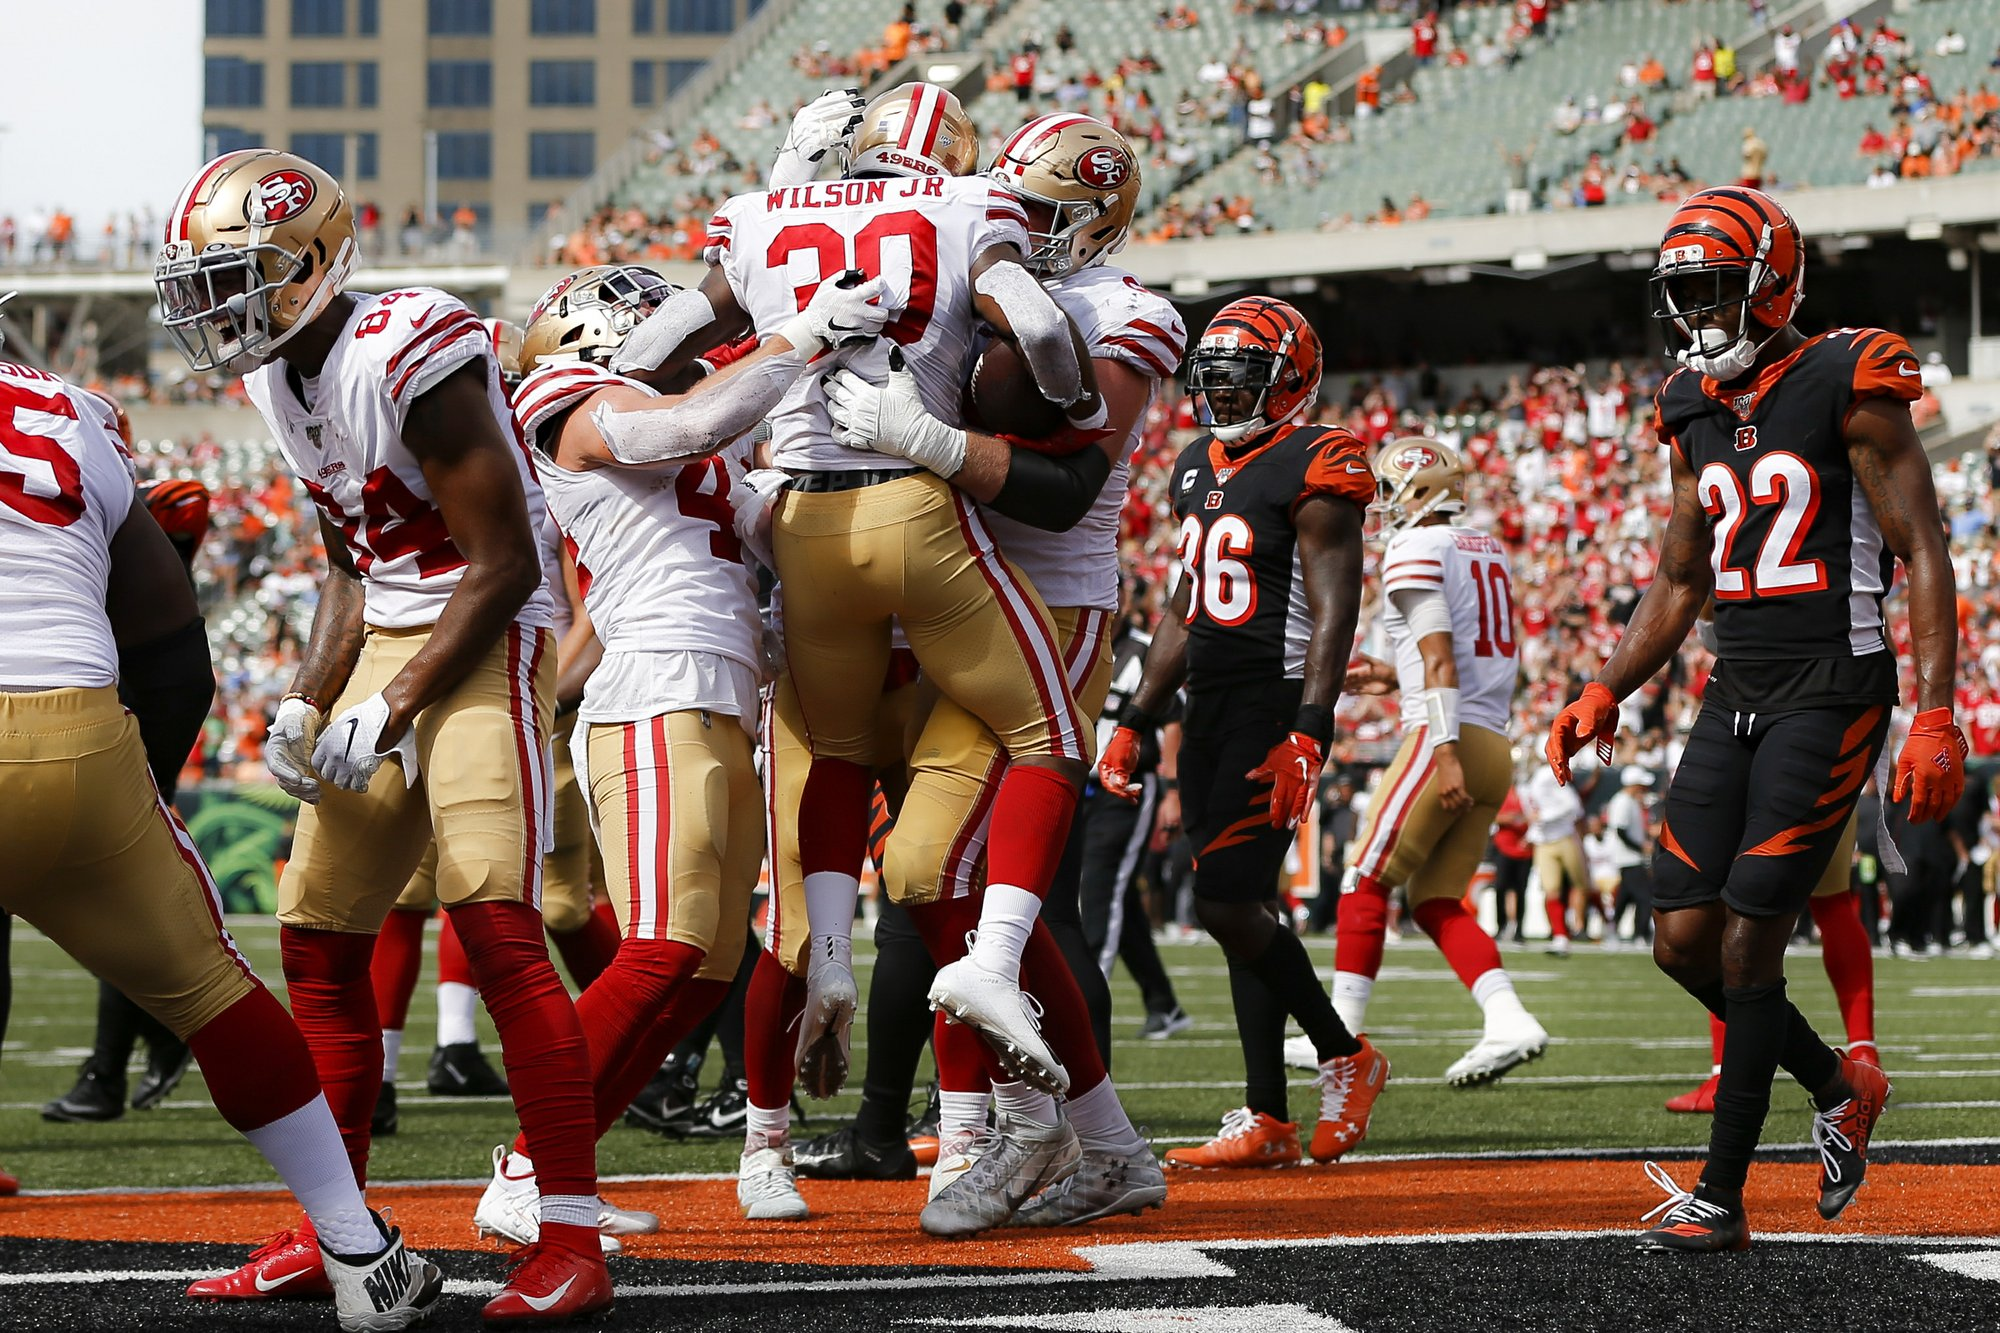 49ers return home after successful road trip to start season